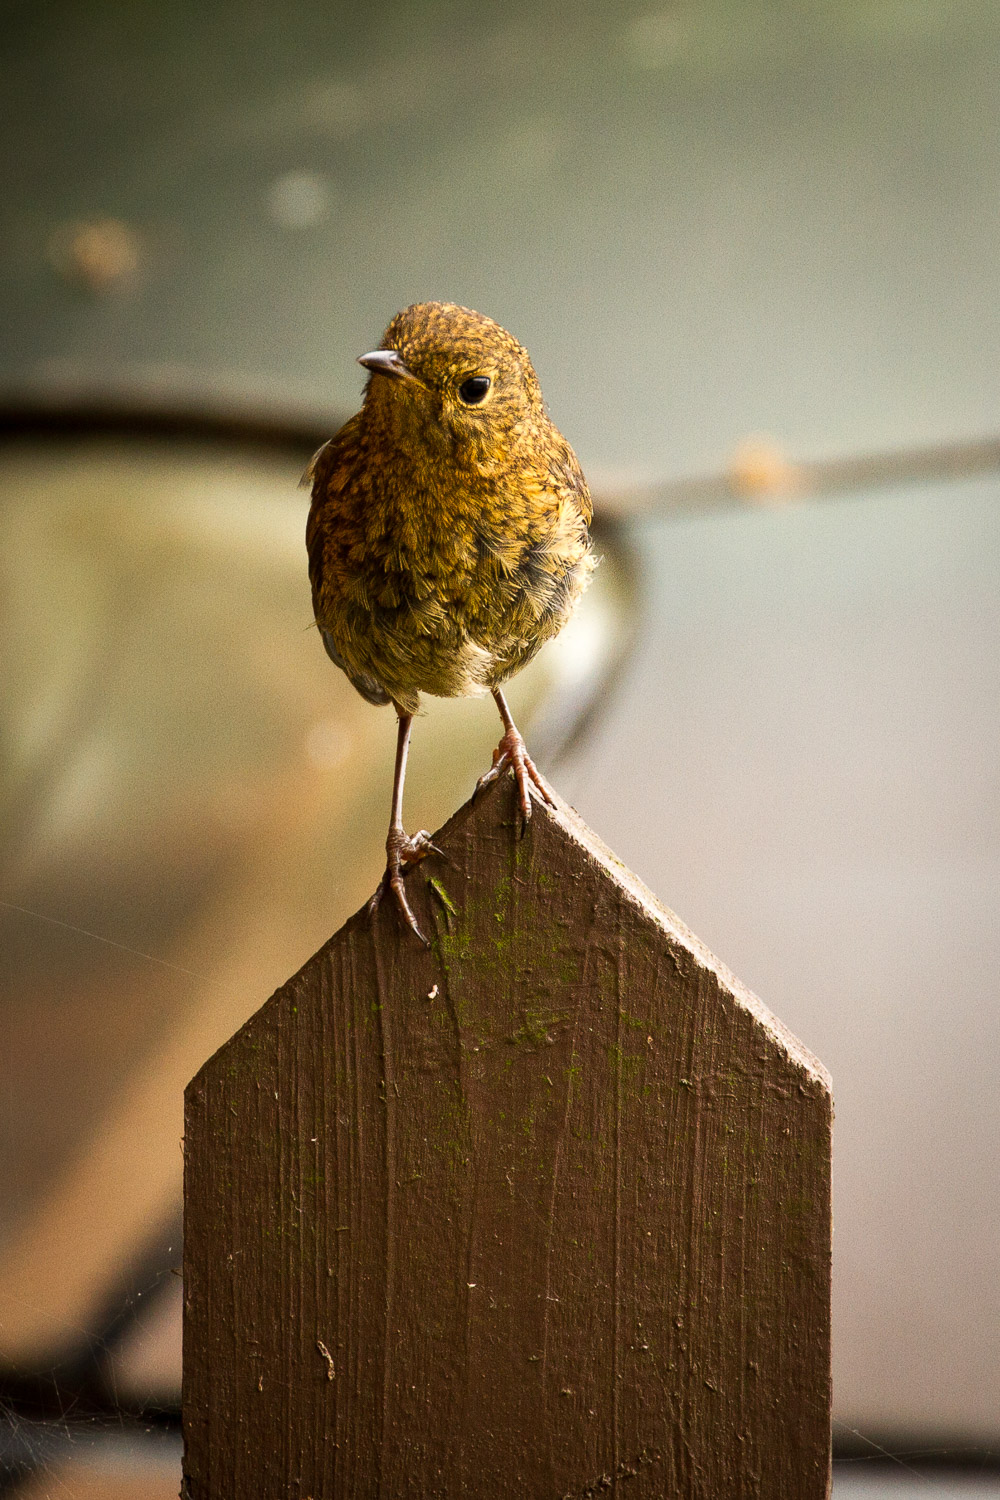 A Photograph Showing A Bird Perched On A Garden Post And Looking Curiously At The Camera In Gloucestershire, England.